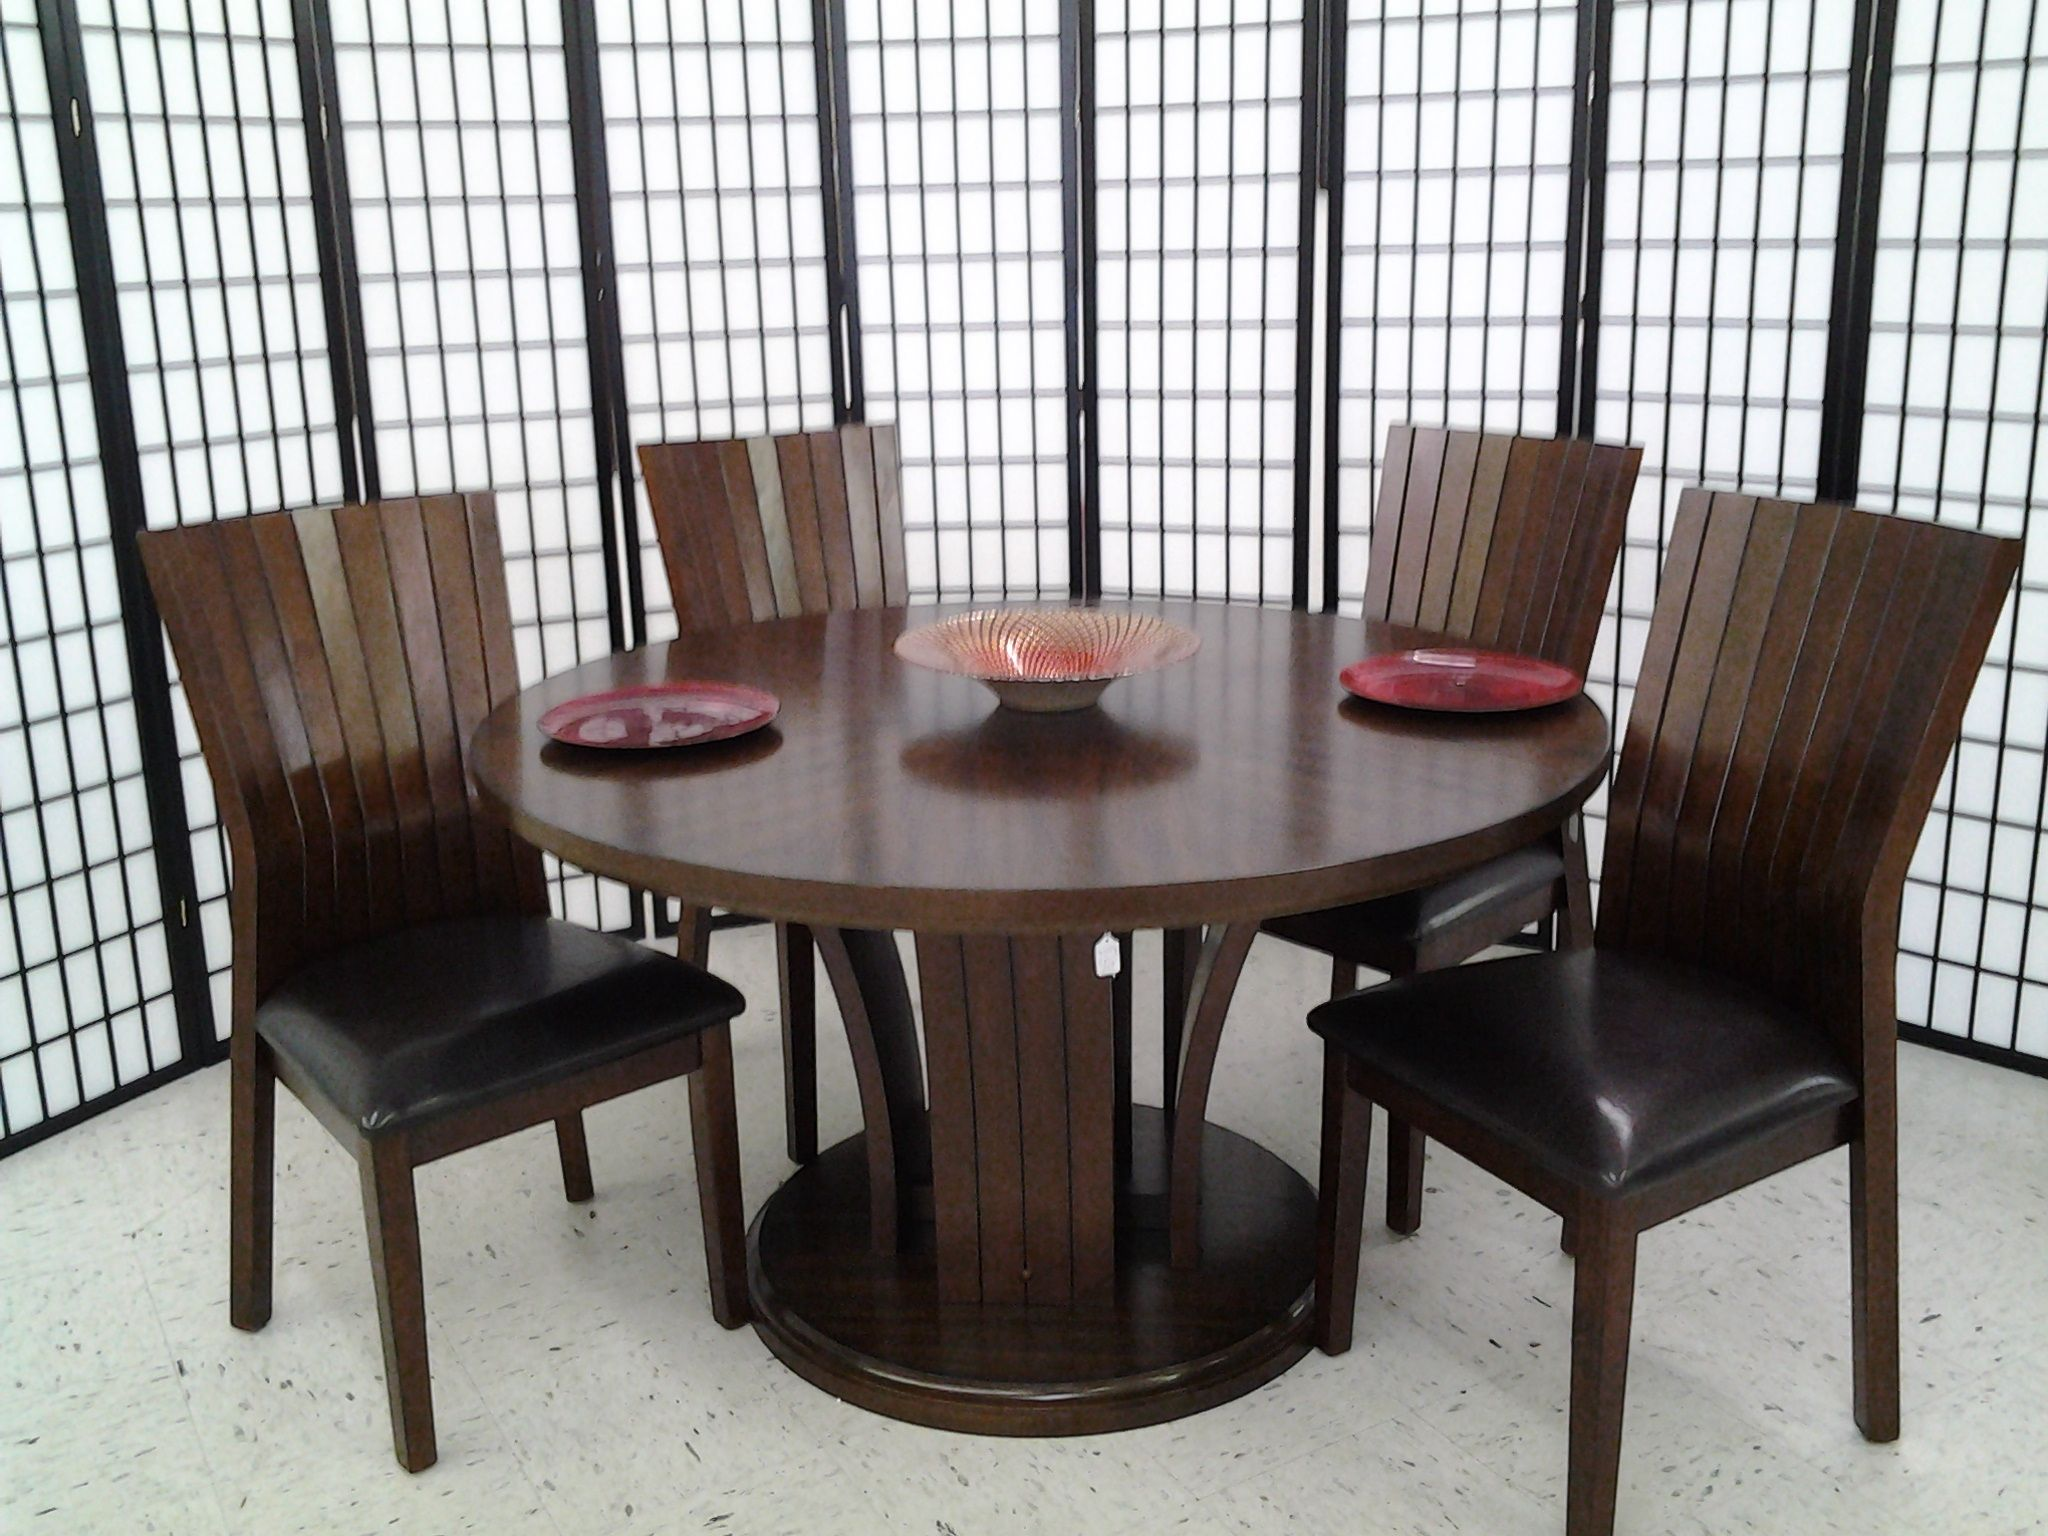 Daria Inch Round Dining Table With Chairs Dining Room Sets - Round dining room table with 4 chairs